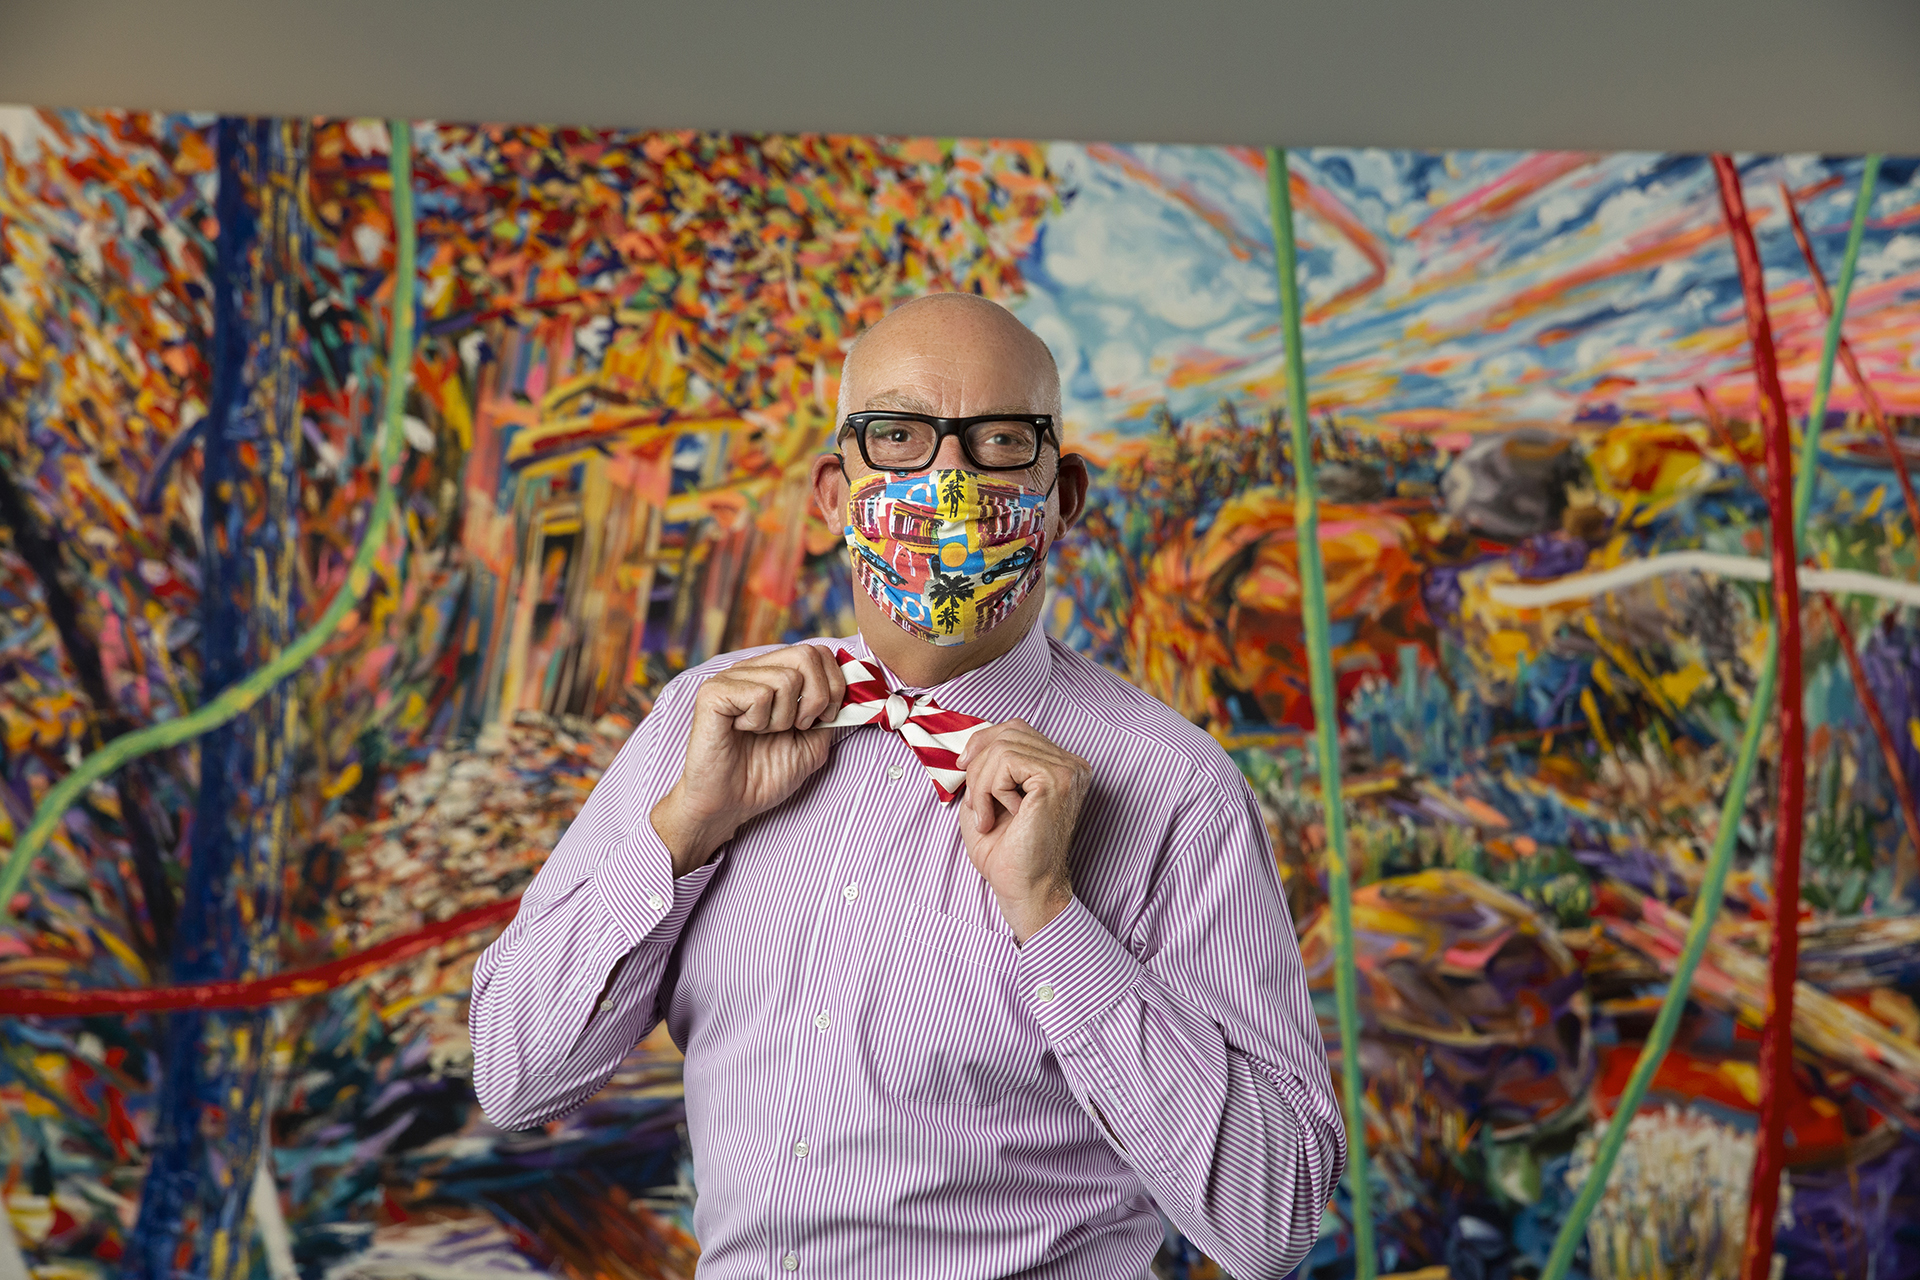 A masked figure in a bowtie poses in front of a vibrant, abstract landscape painting